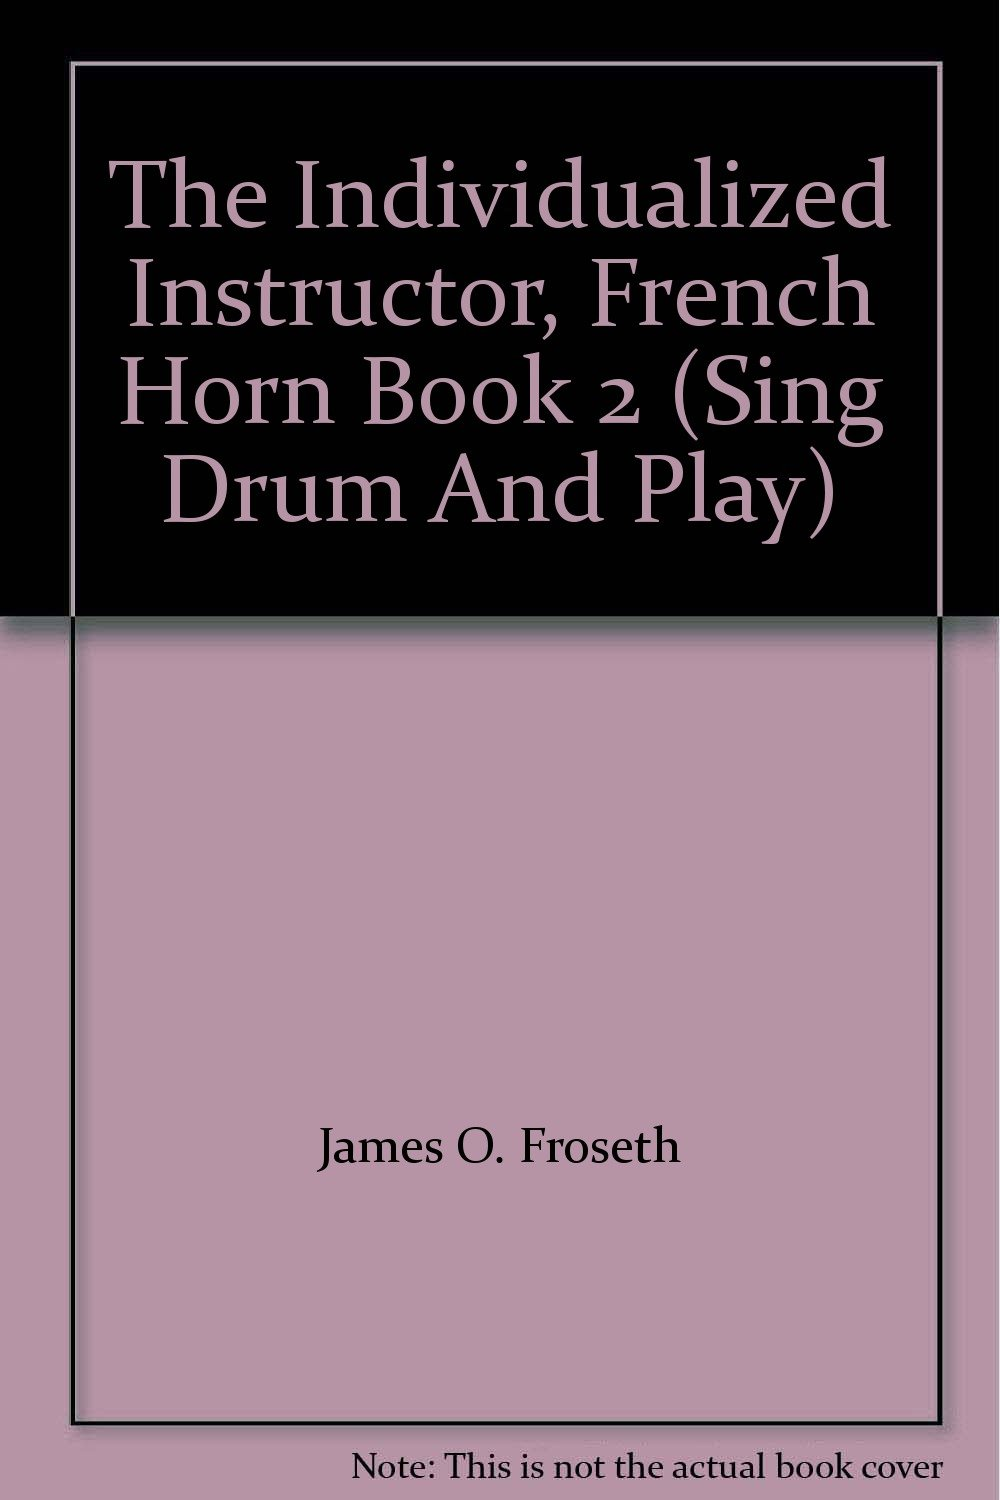 The Individualized Instructor, French Horn Book 2 (Sing Drum And Play)